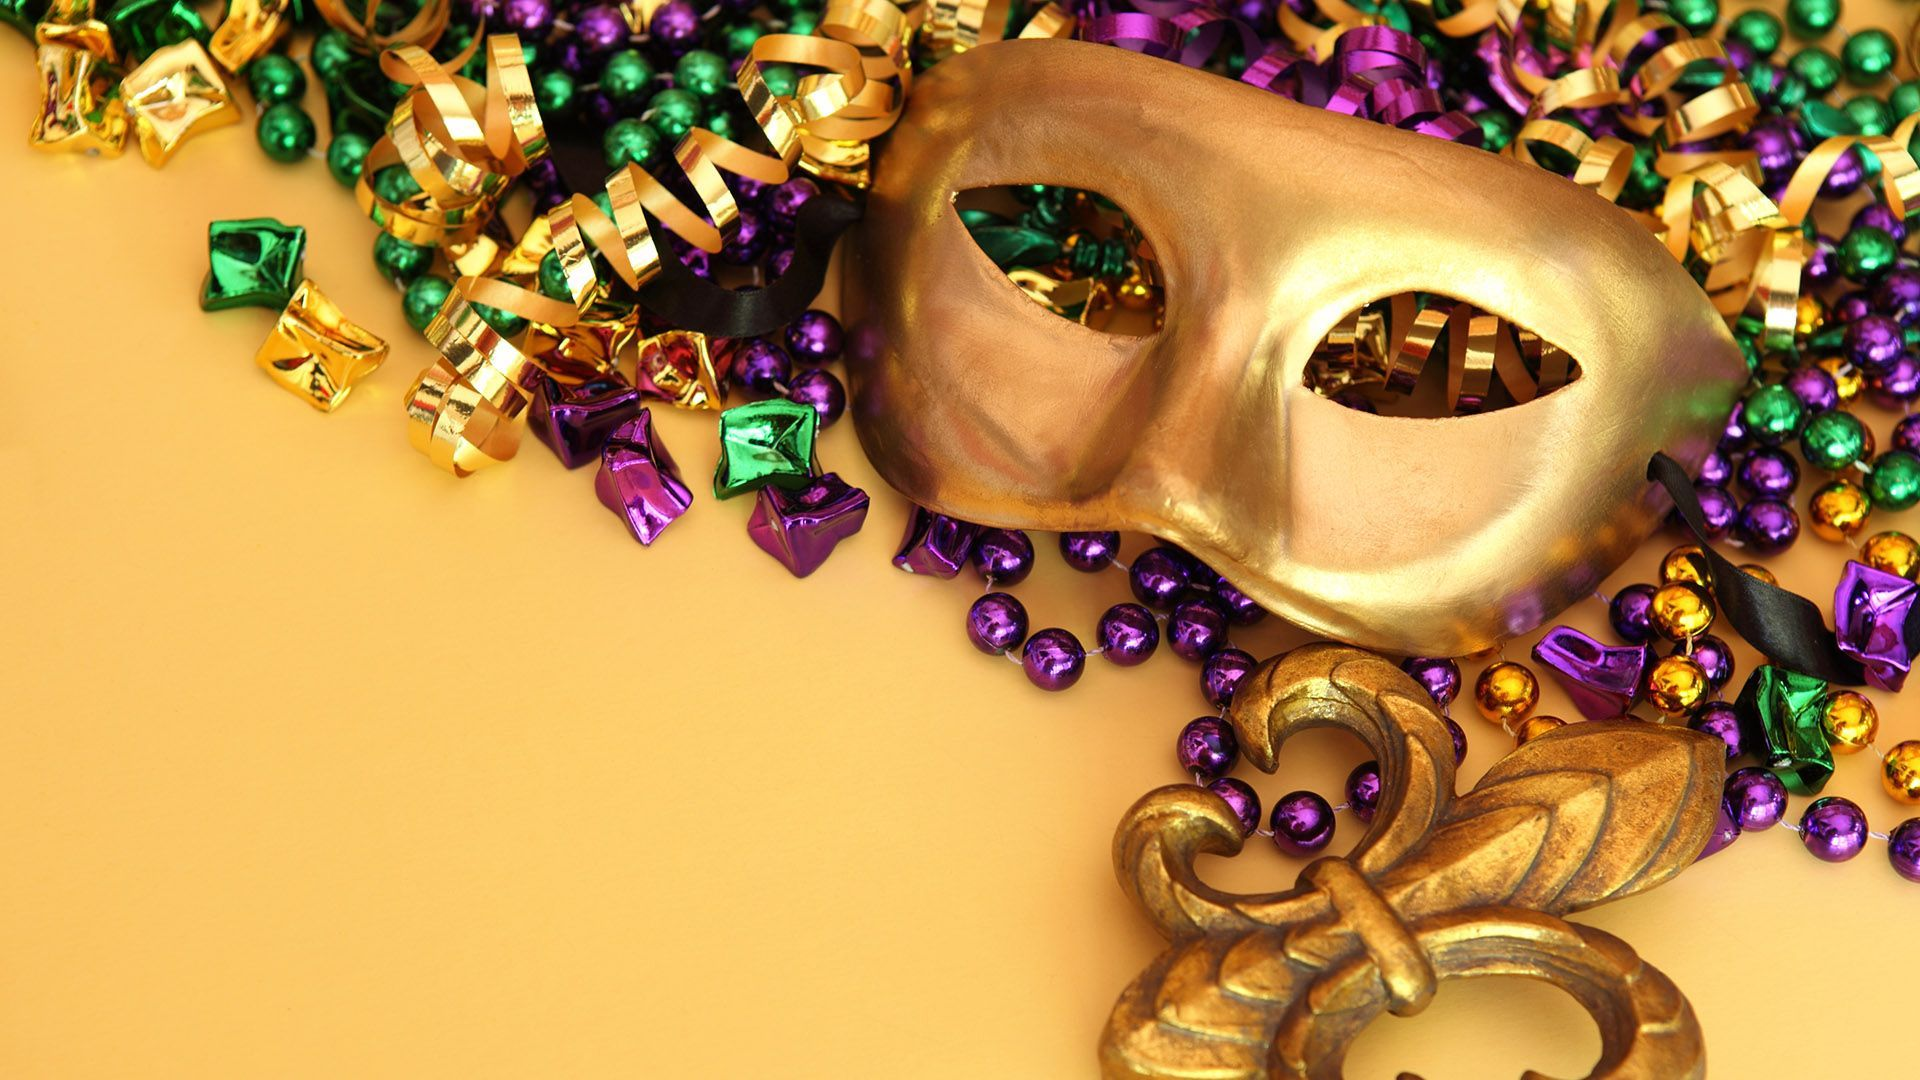 Mardi Gras Wallpaper